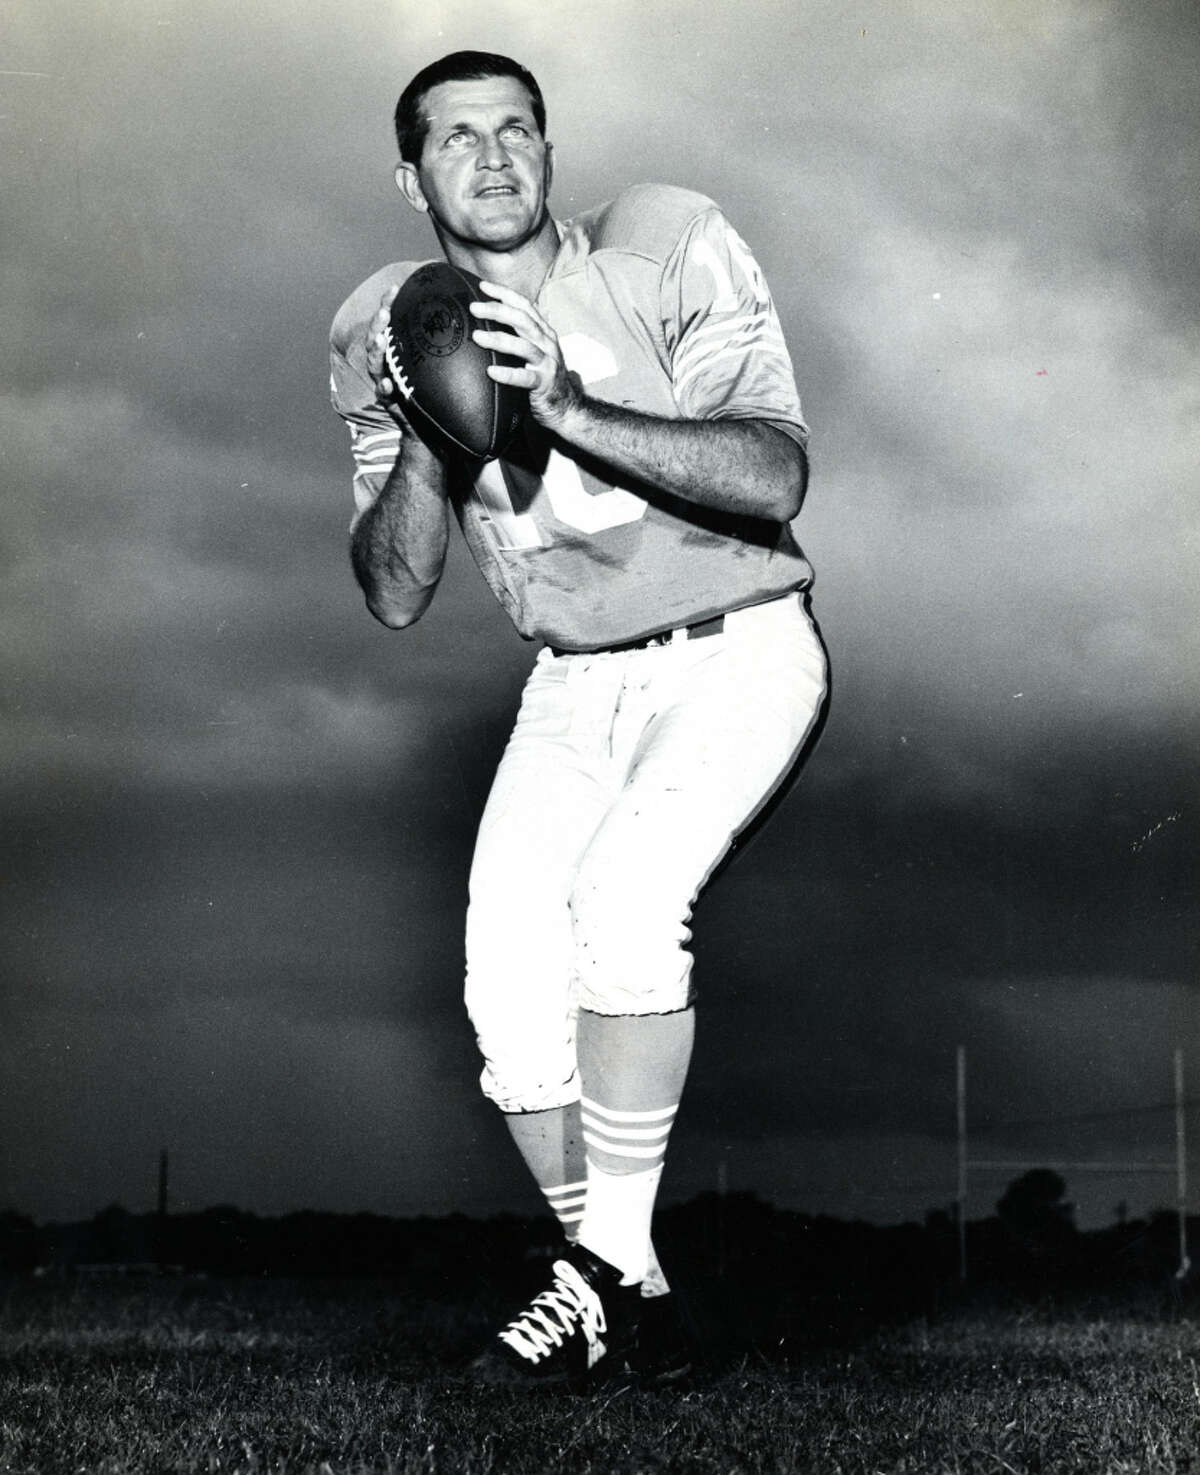 GEORGE BLANDA: SINGLE-GAME TD PASSES The Oilers quarterback tied the record for touchdown passes in a game with seven against the New York Titans on Nov. 19, 1961.